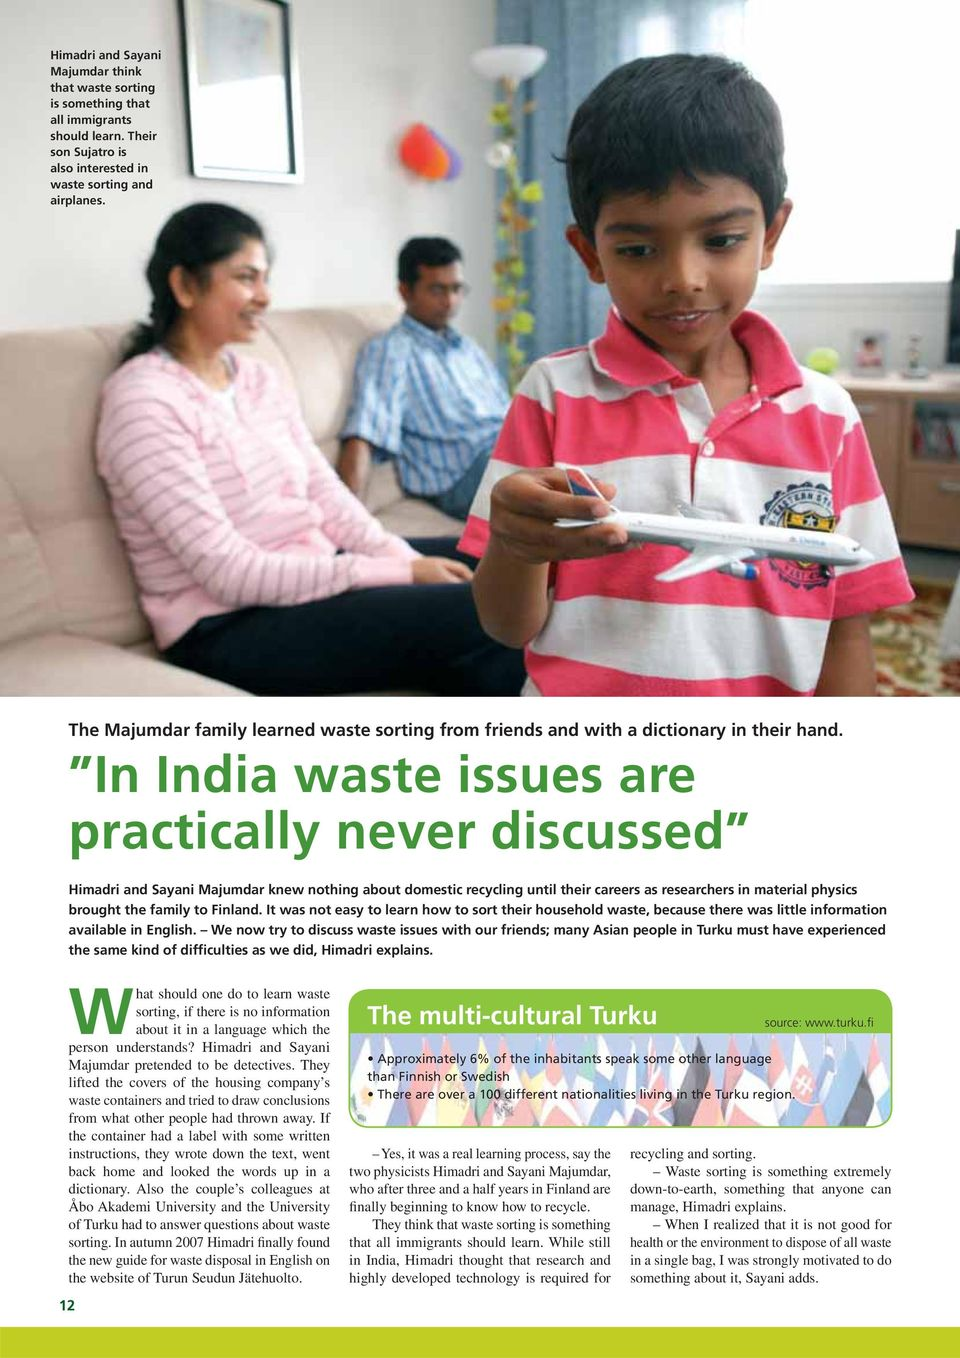 In India waste issues are practically never discussed Himadri and Sayani Majumdar knew nothing about domestic recycling until their careers as researchers in material physics brought the family to